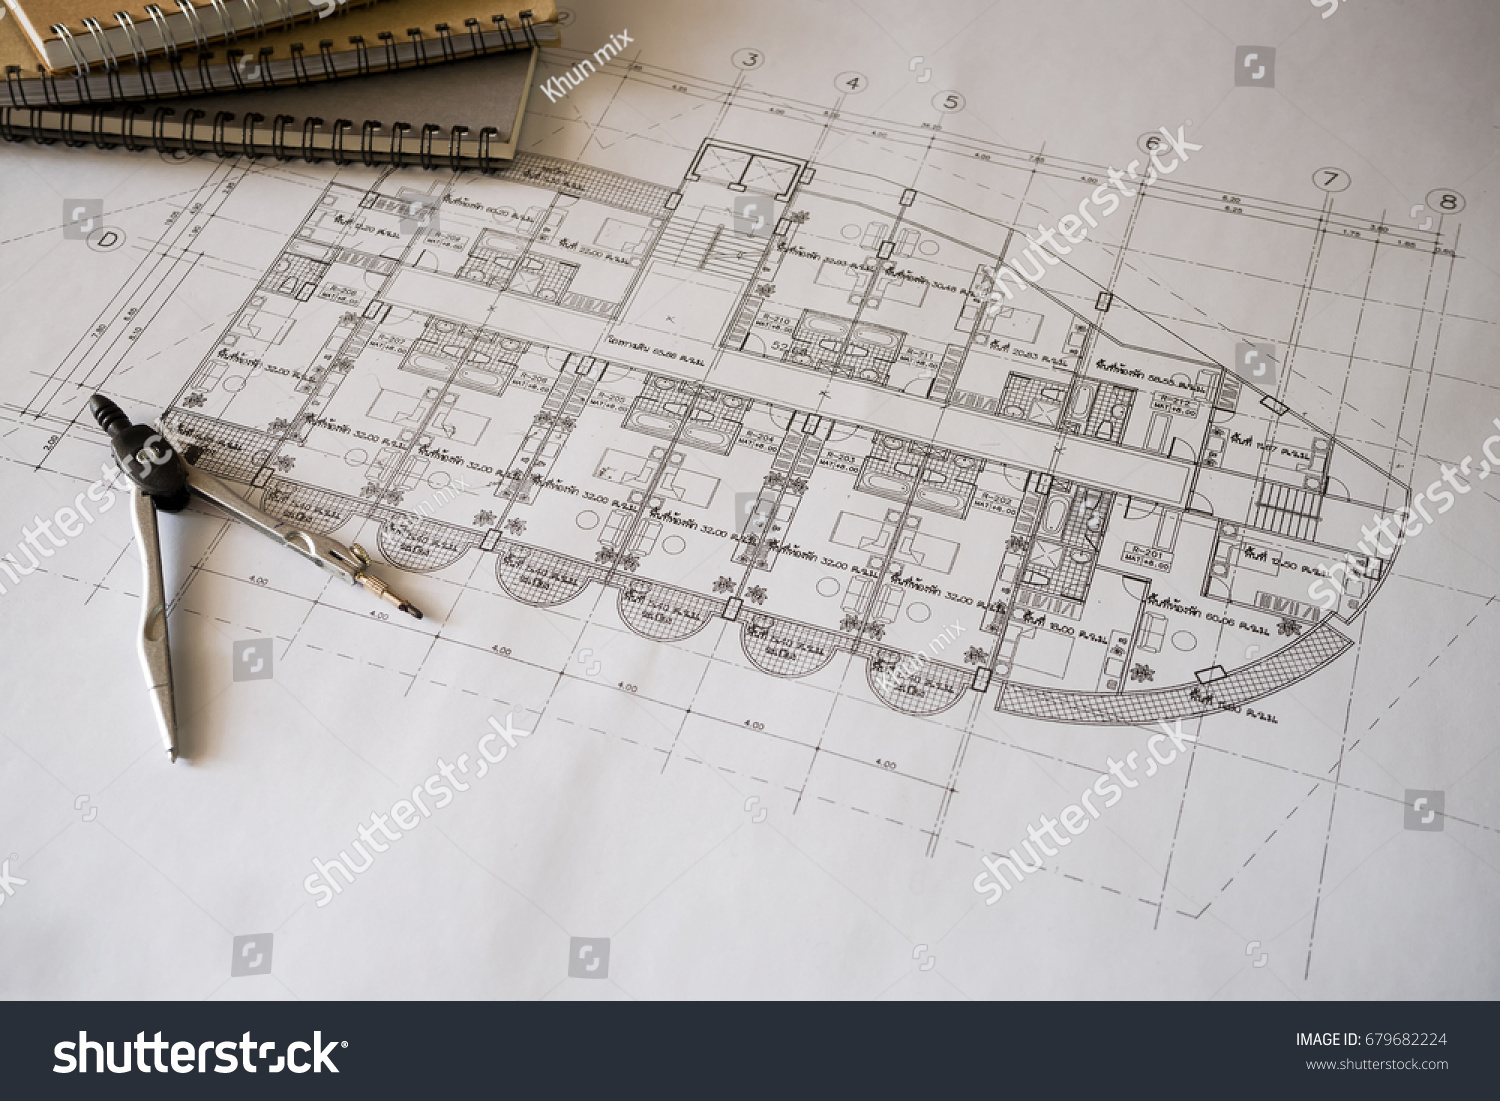 Workplace Architect Notepad Home Office Top Stock Photo (Safe to Use ...